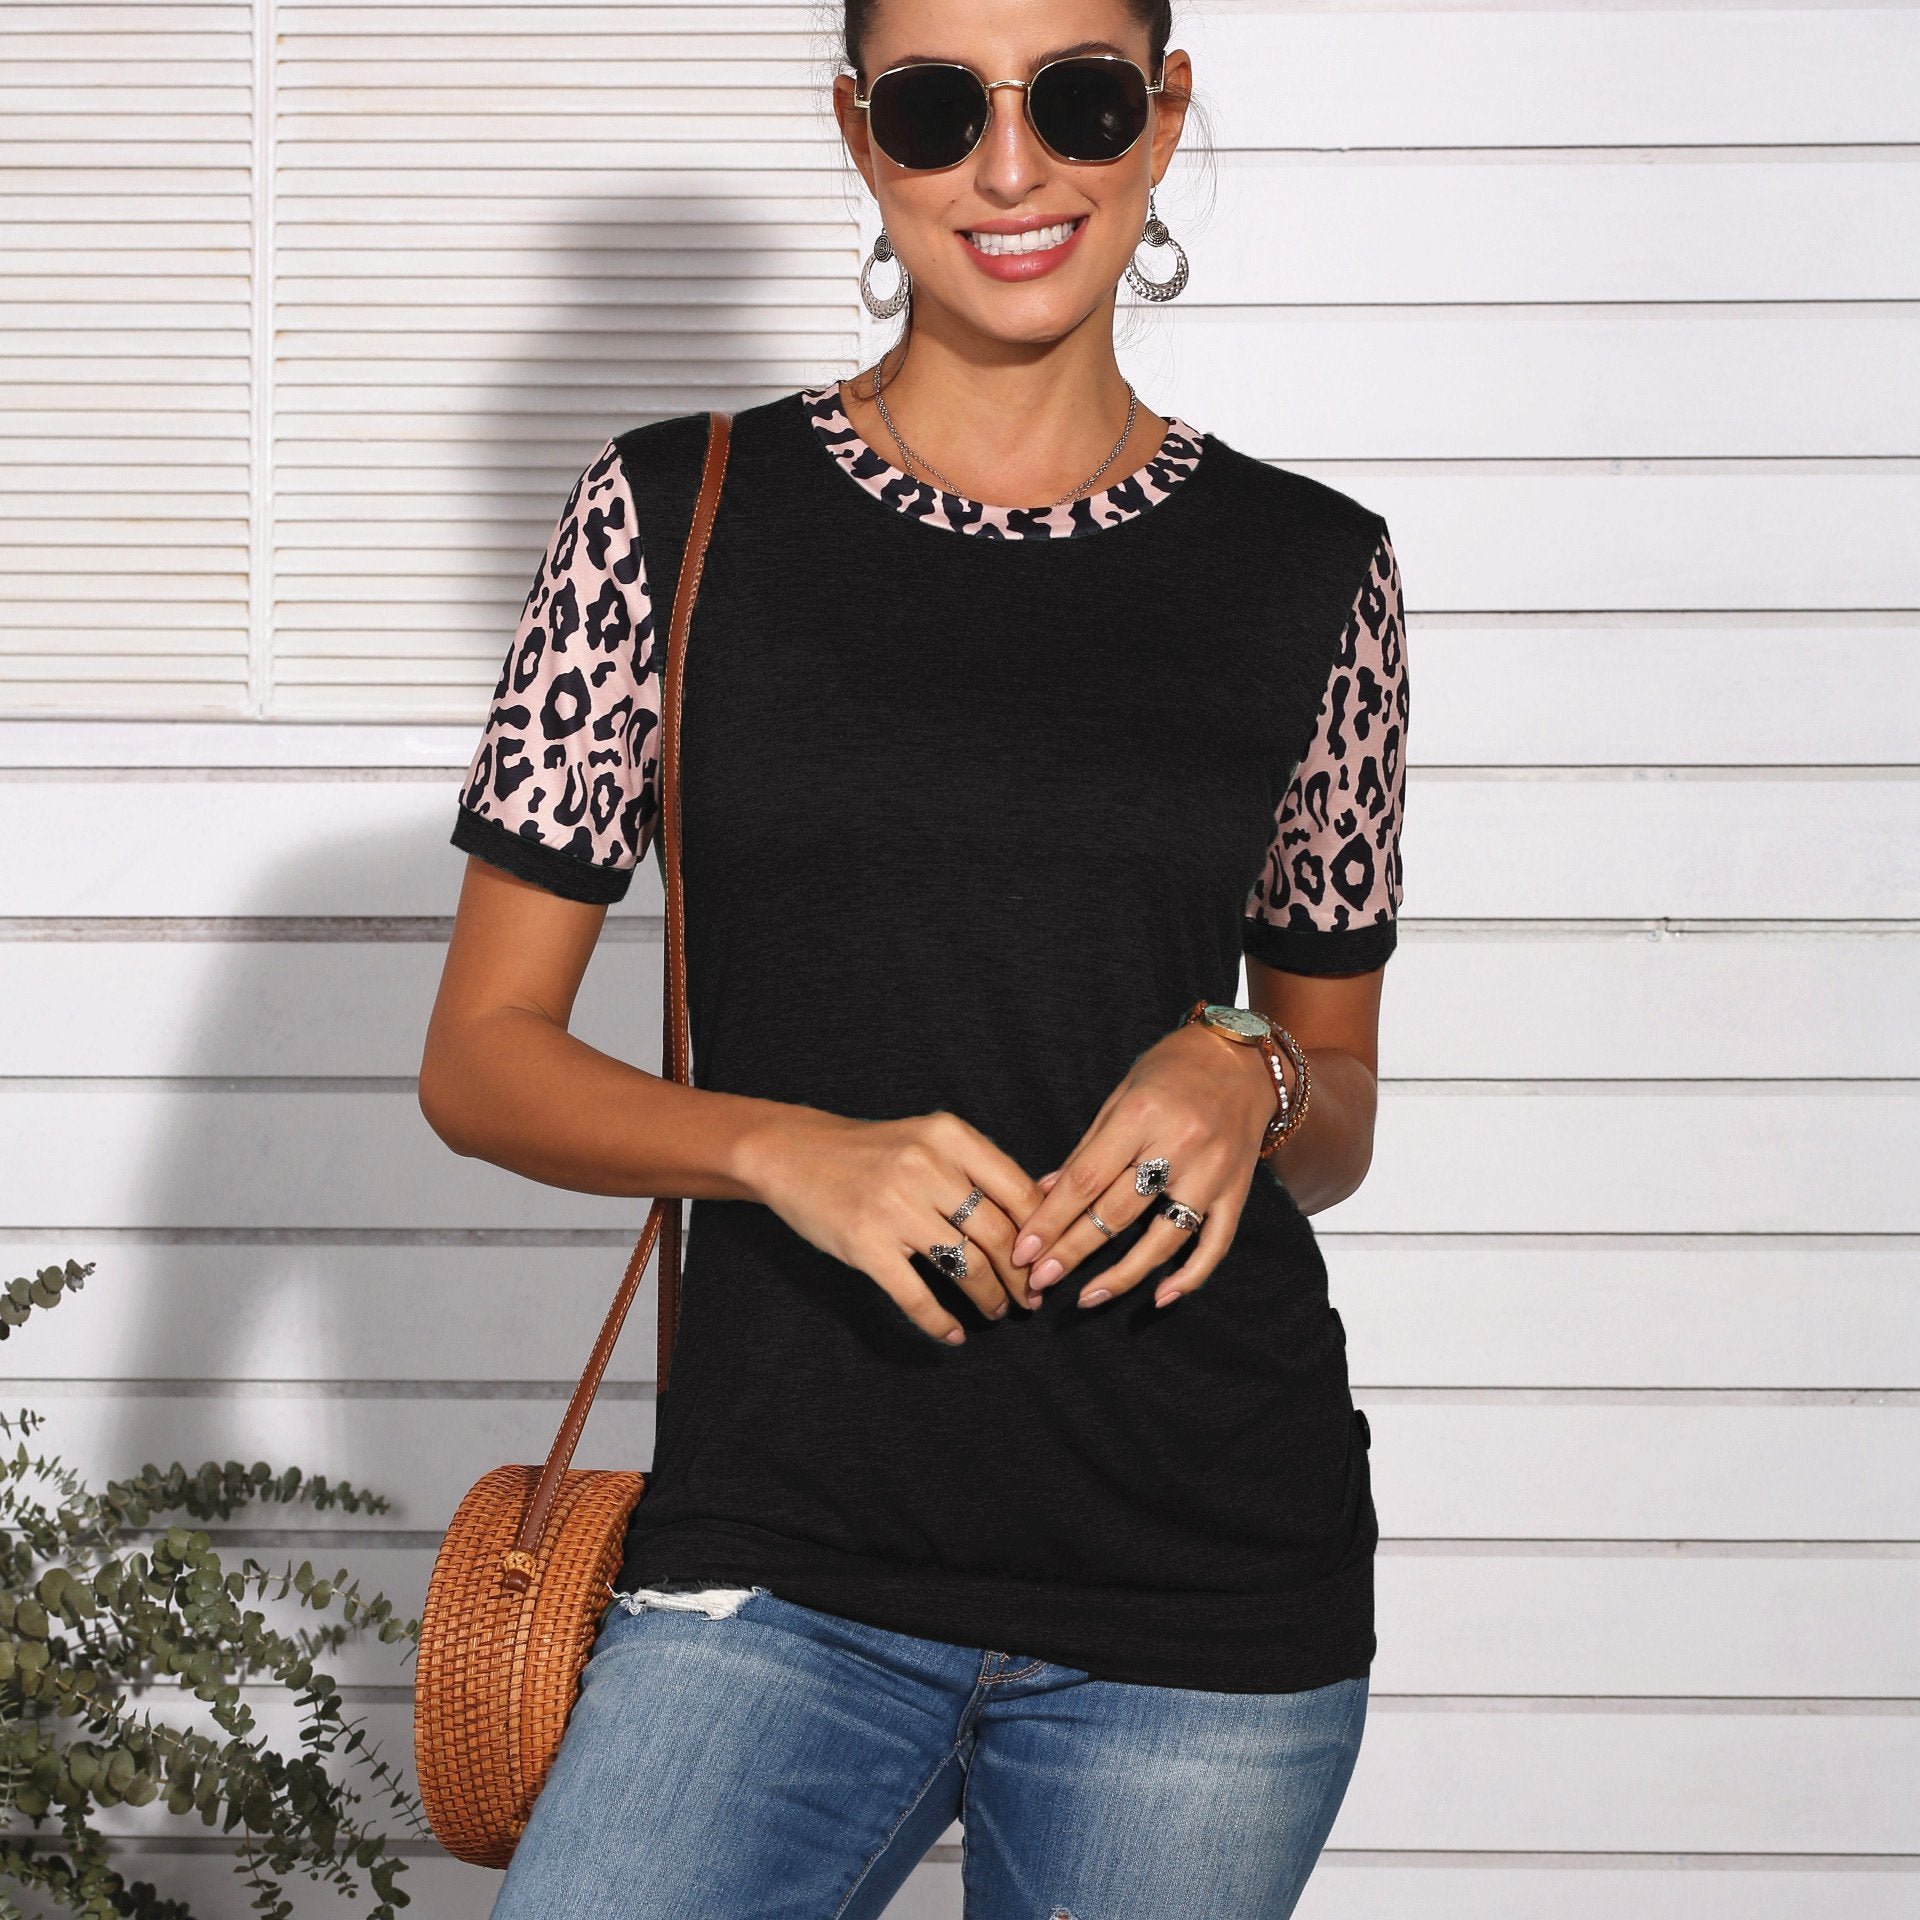 O-neck Patchwork Leopard Printed Short Sleeve T-shirt